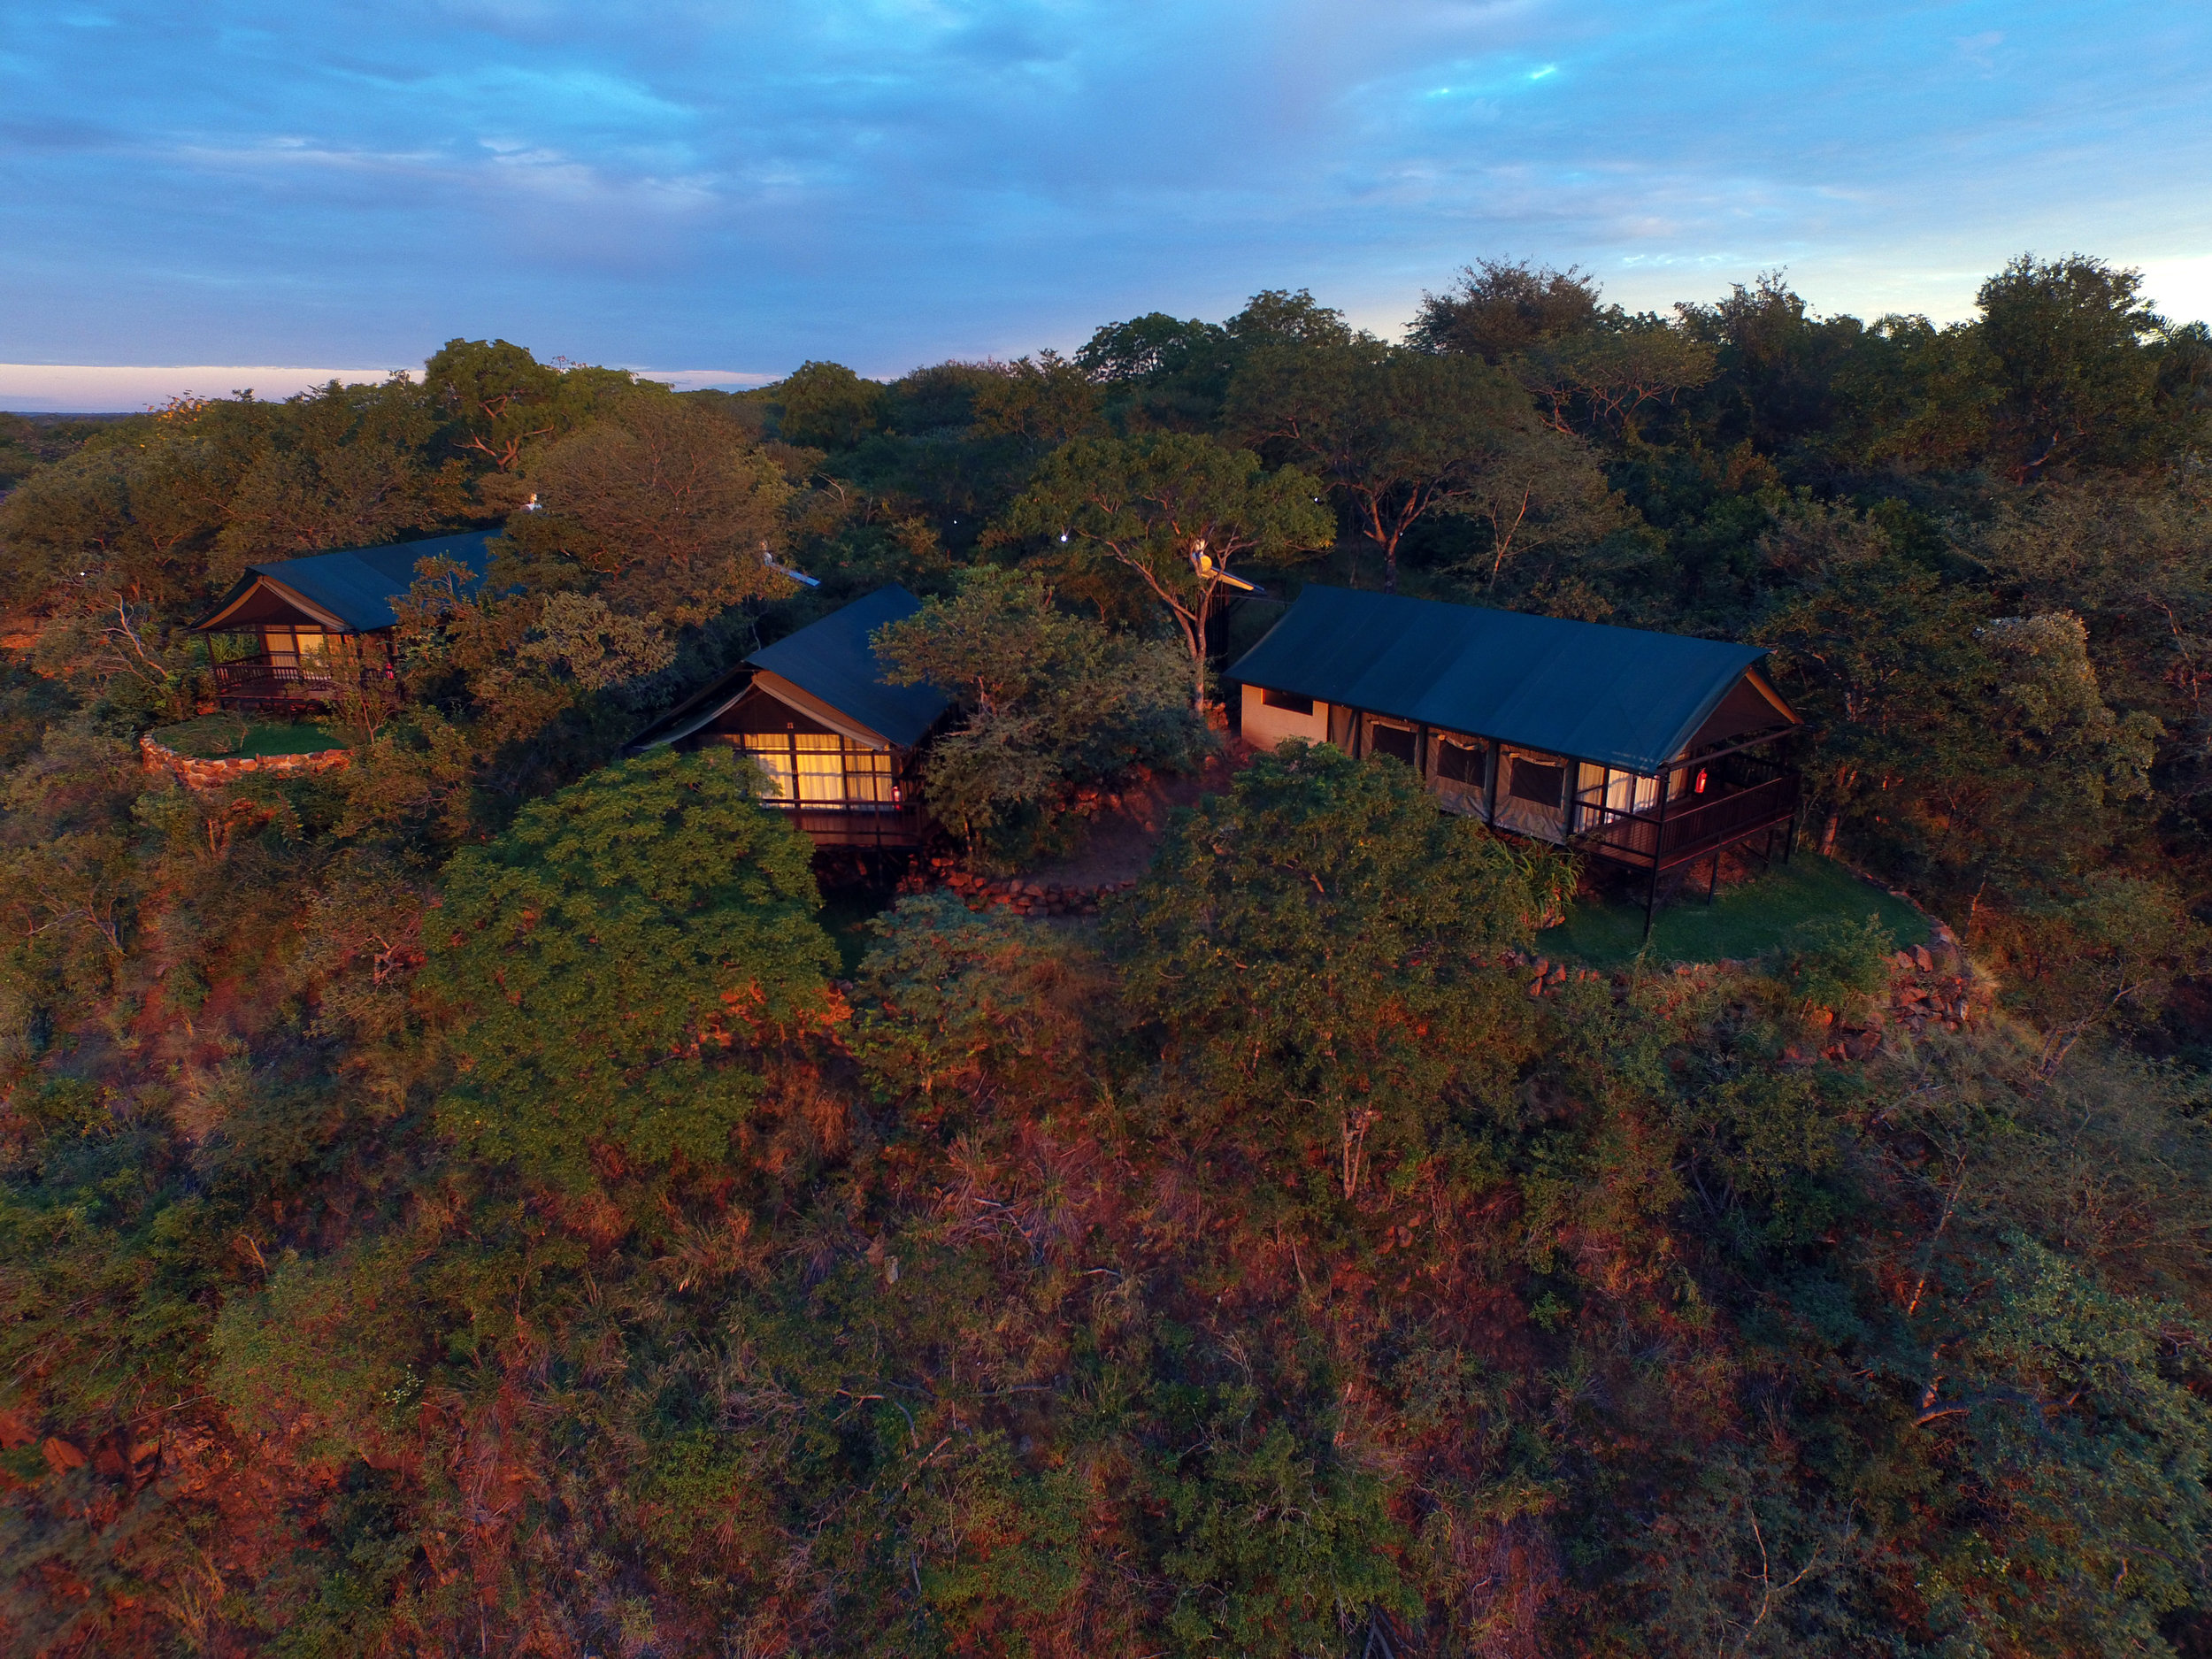 23a - Imvelo Safari Lodges - Little Gorges - tents on the edge.JPG